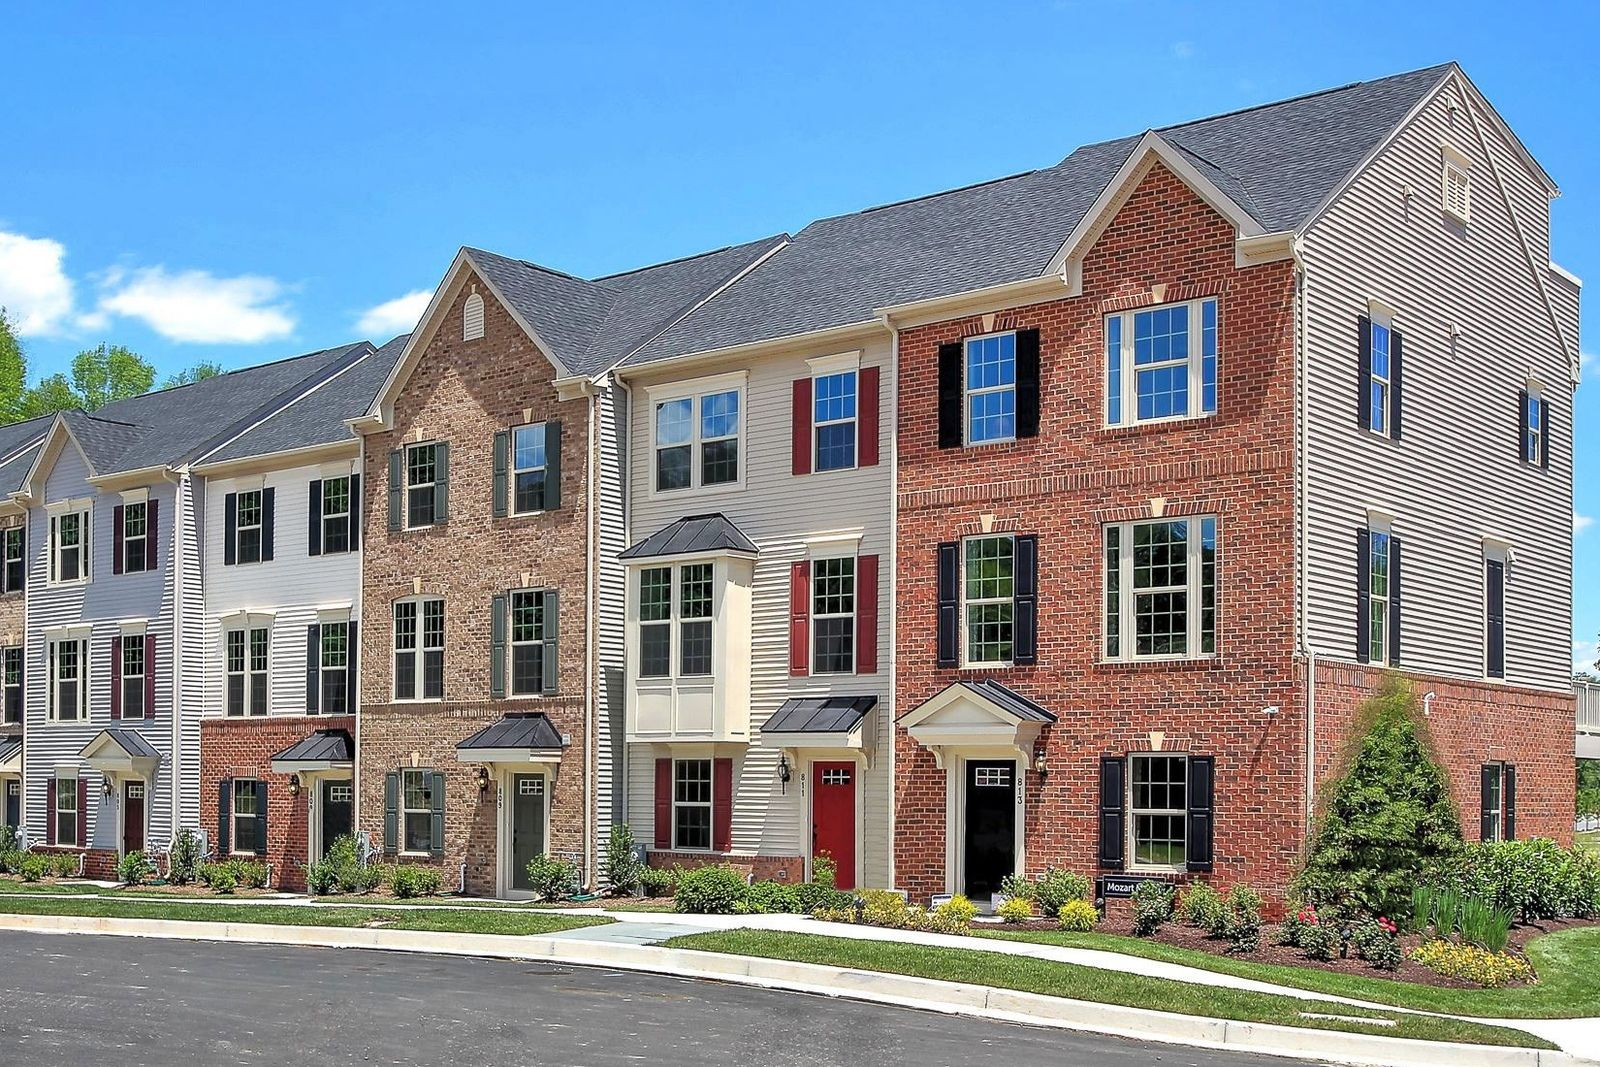 BRAND NEW TOWNHOMES ARE COMING SOON TO ARCOLA TOWN CENTER:Loudoun County's best value townhomes in amenity-filled Arcola Town Center - easy access to commuter routes, shops & dining!Join the VIP List today.